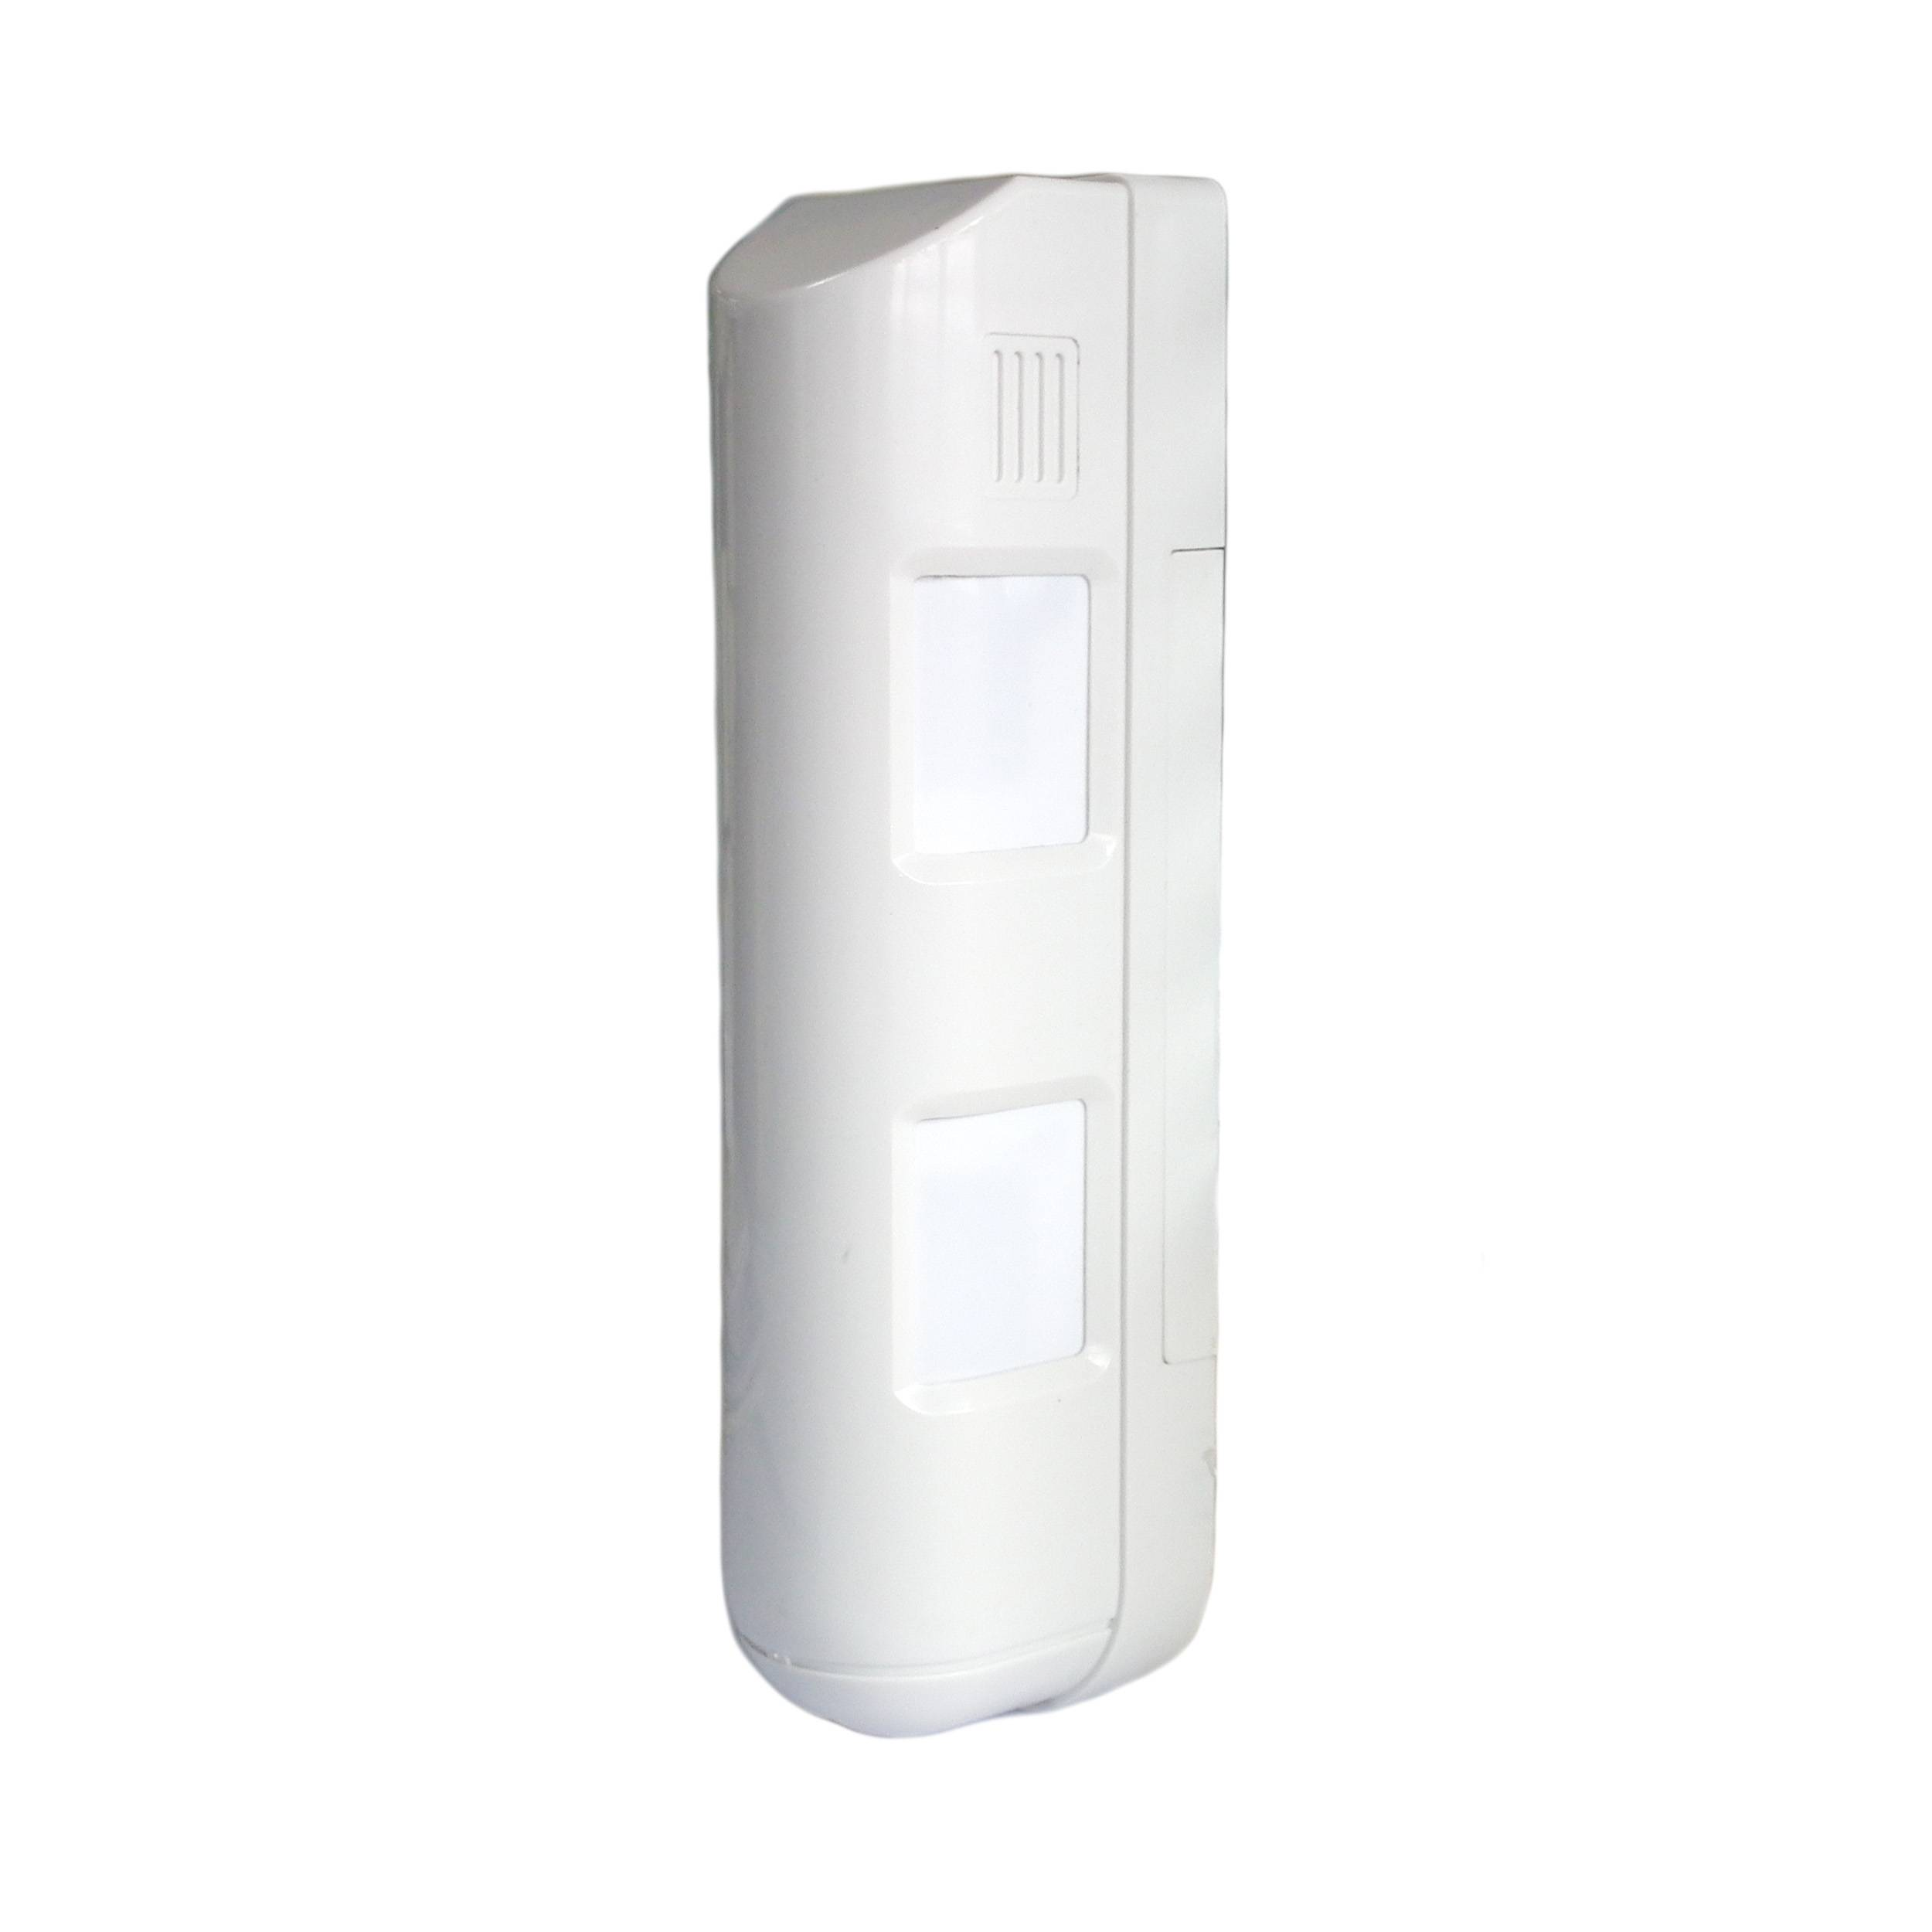 Dual Curtain Outdoor Motion Detector For Boundary Protection